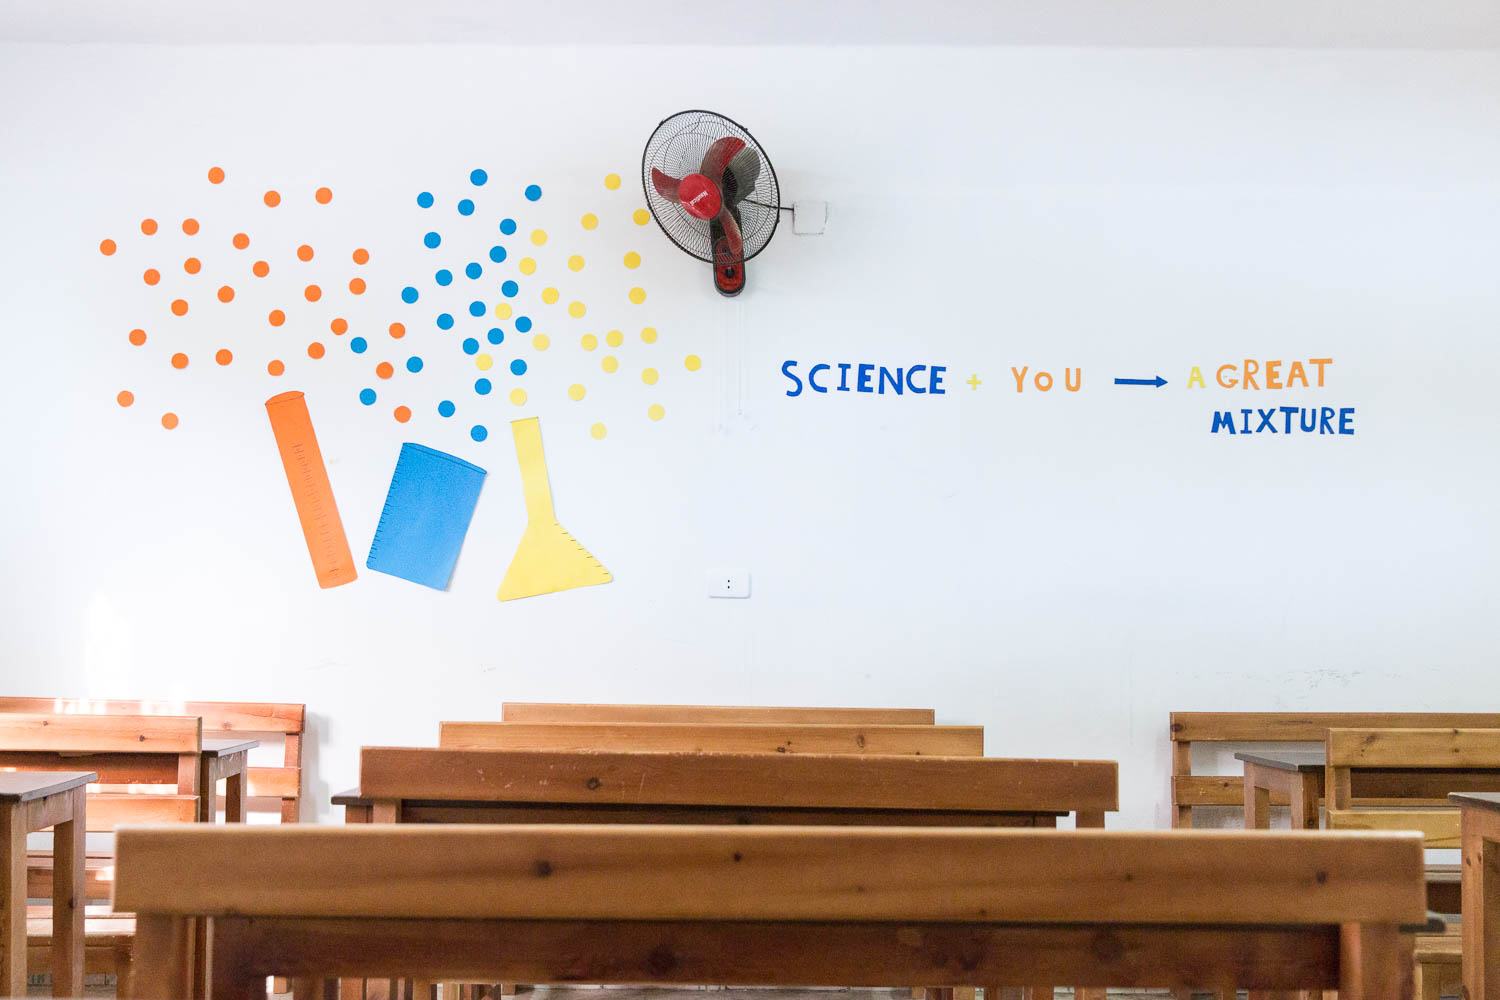 All classrooms in the community centre are decorated with colorful motivational messages.